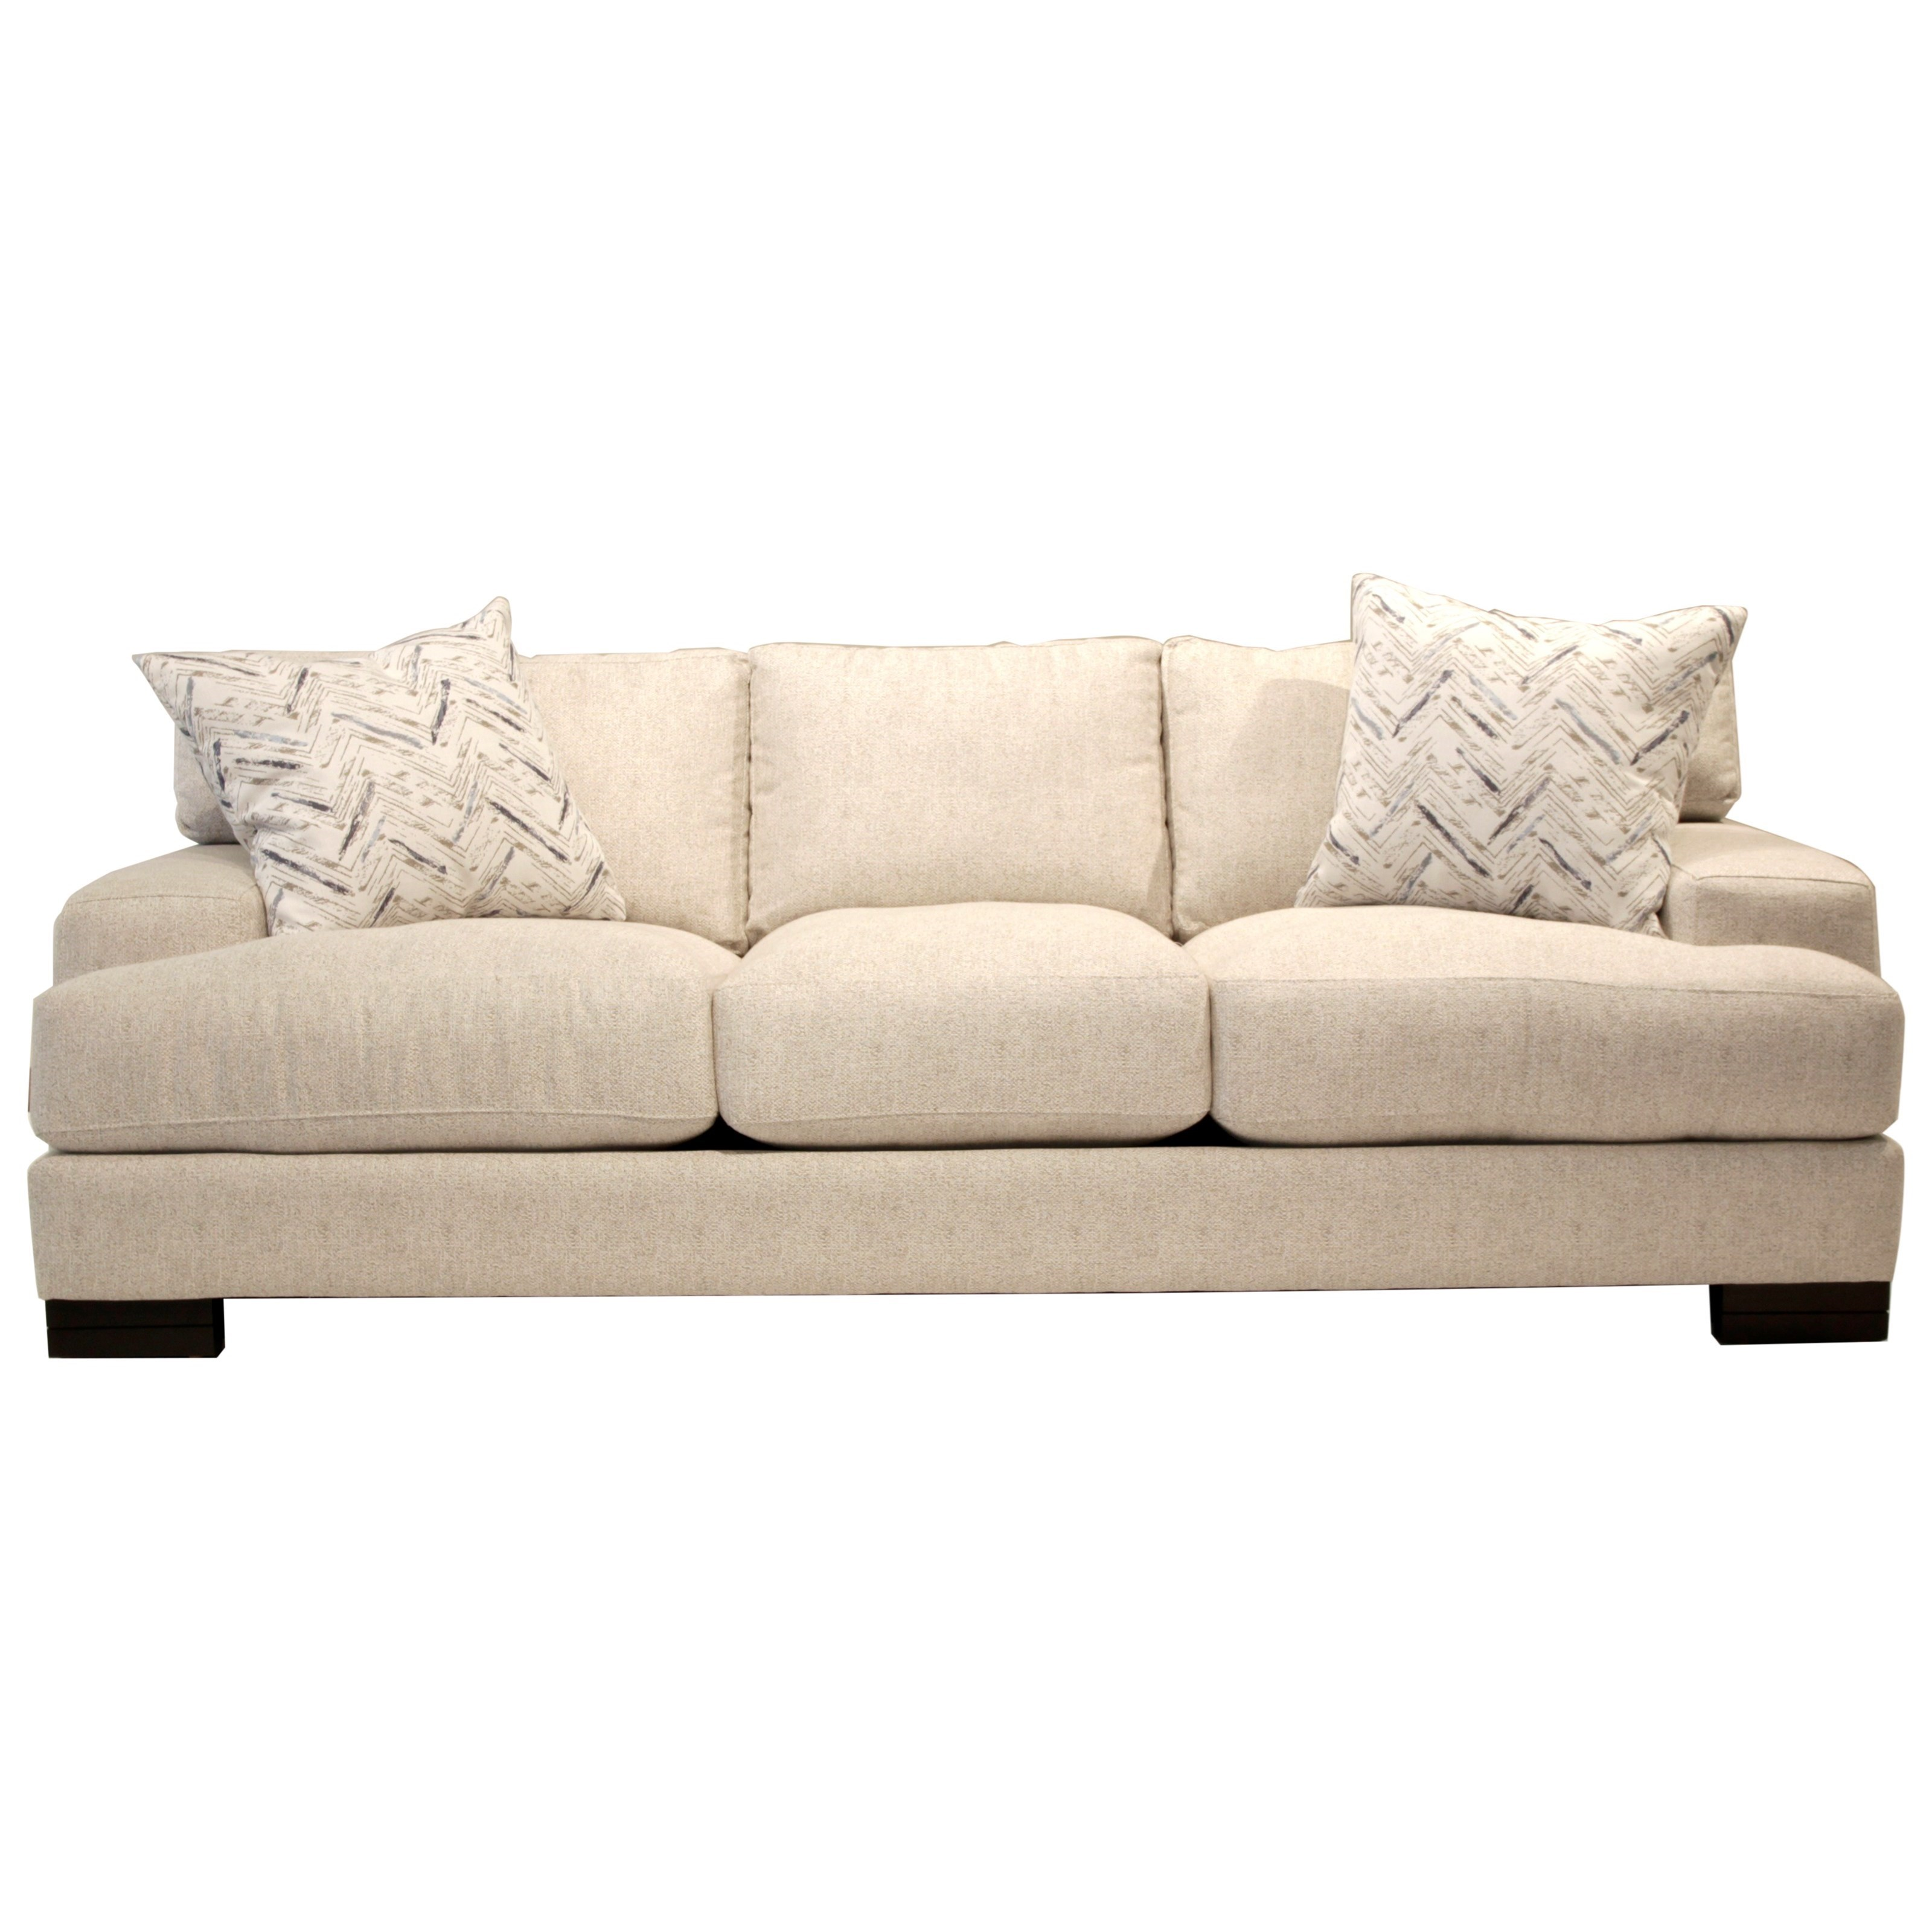 Jonathan Louis Burton Modern Sofa With Low Track Arms And Exposed